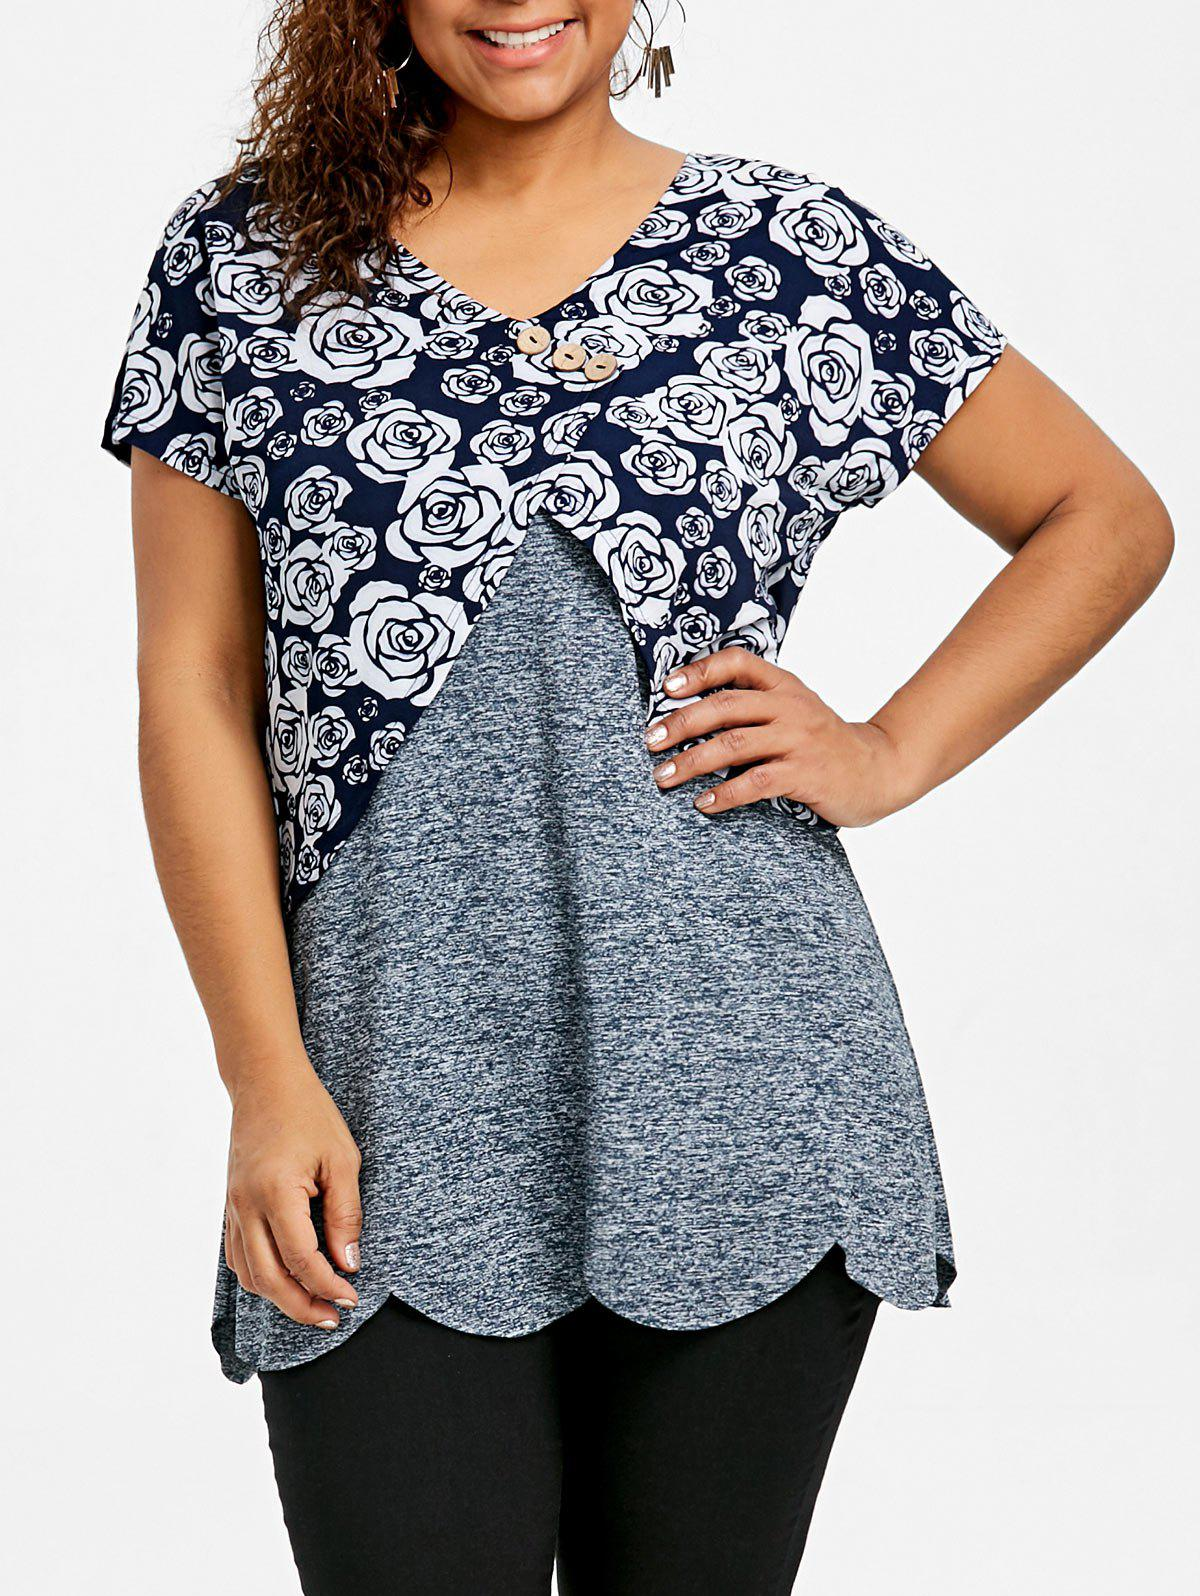 Sale Plus Size Overlay Floral Scalloped Edge T-shirt